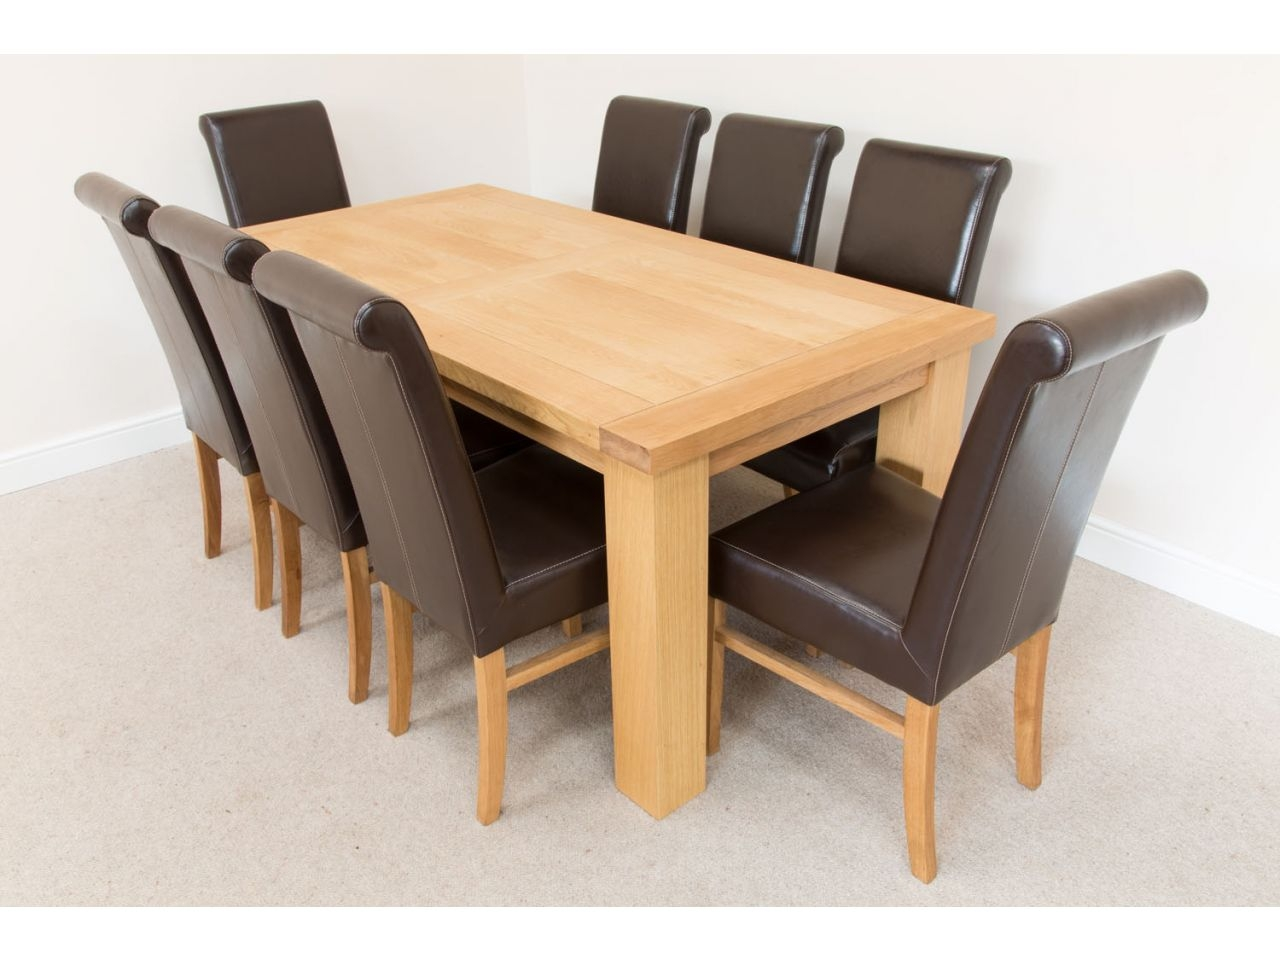 18m Riga Oak Dining Table 8 Emperor Brown Leather Dining Chairs Layjao